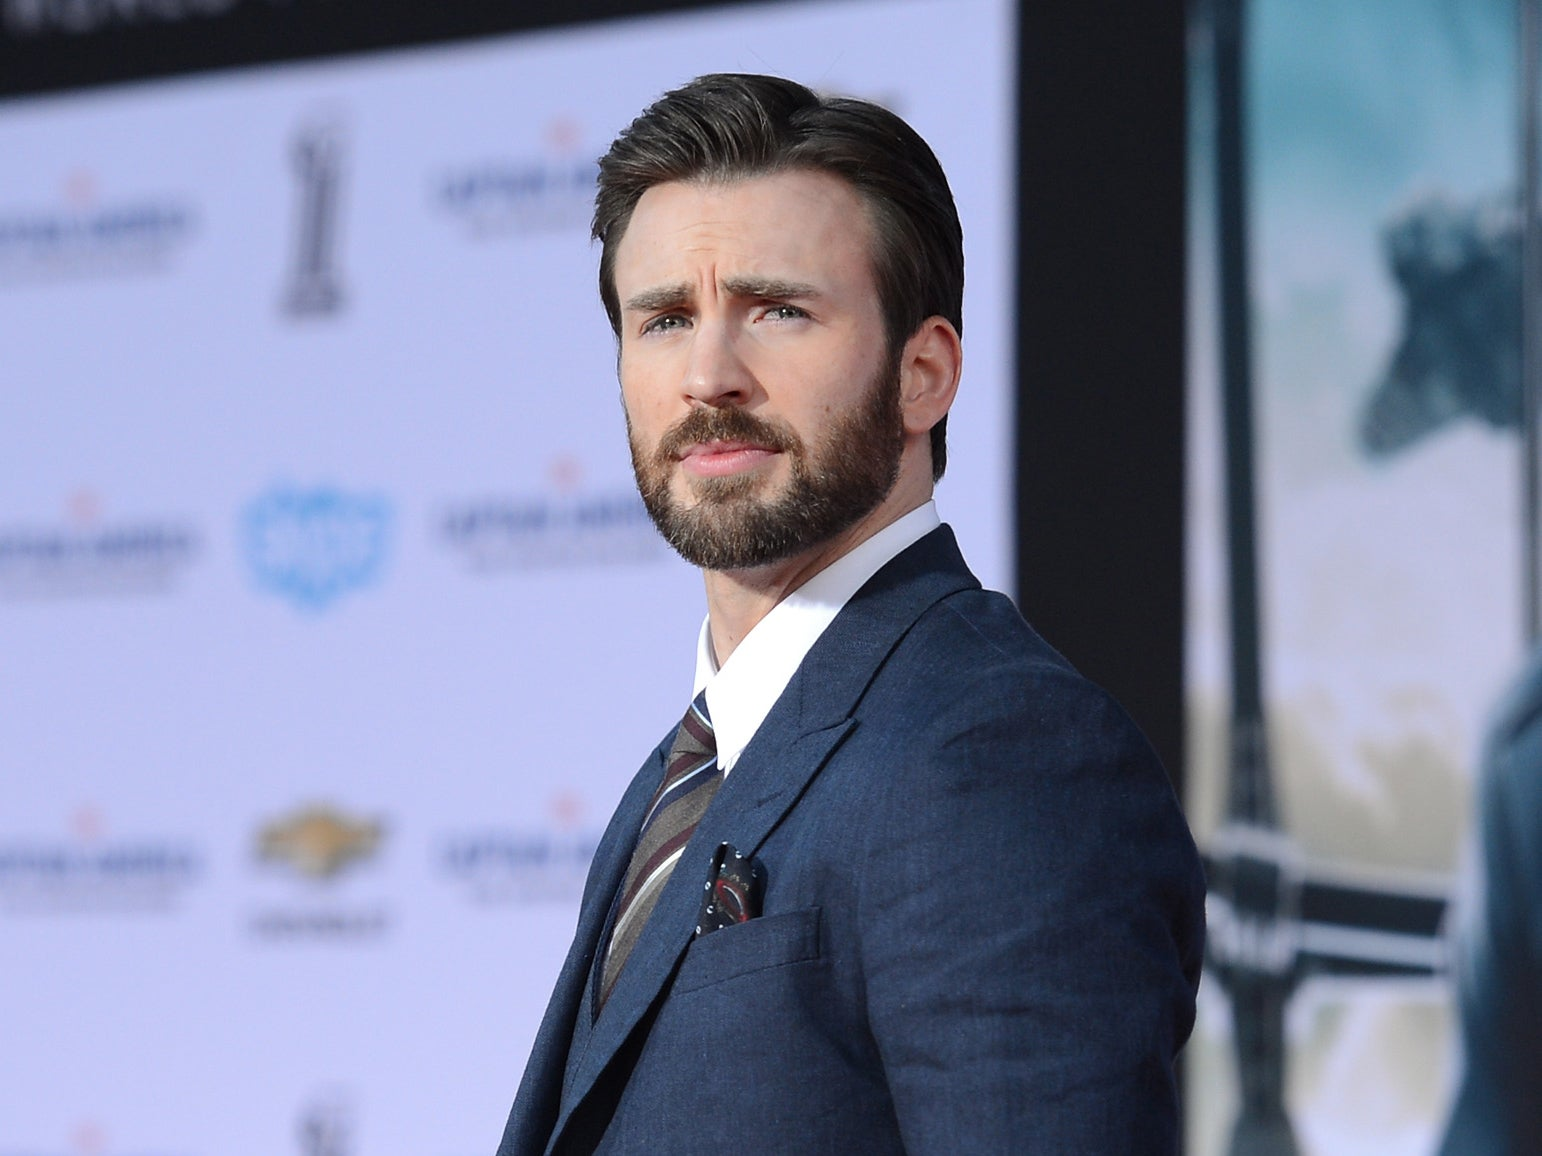 Chris Evans turned down Captain America several times after suffering from anxiety and panic attacks